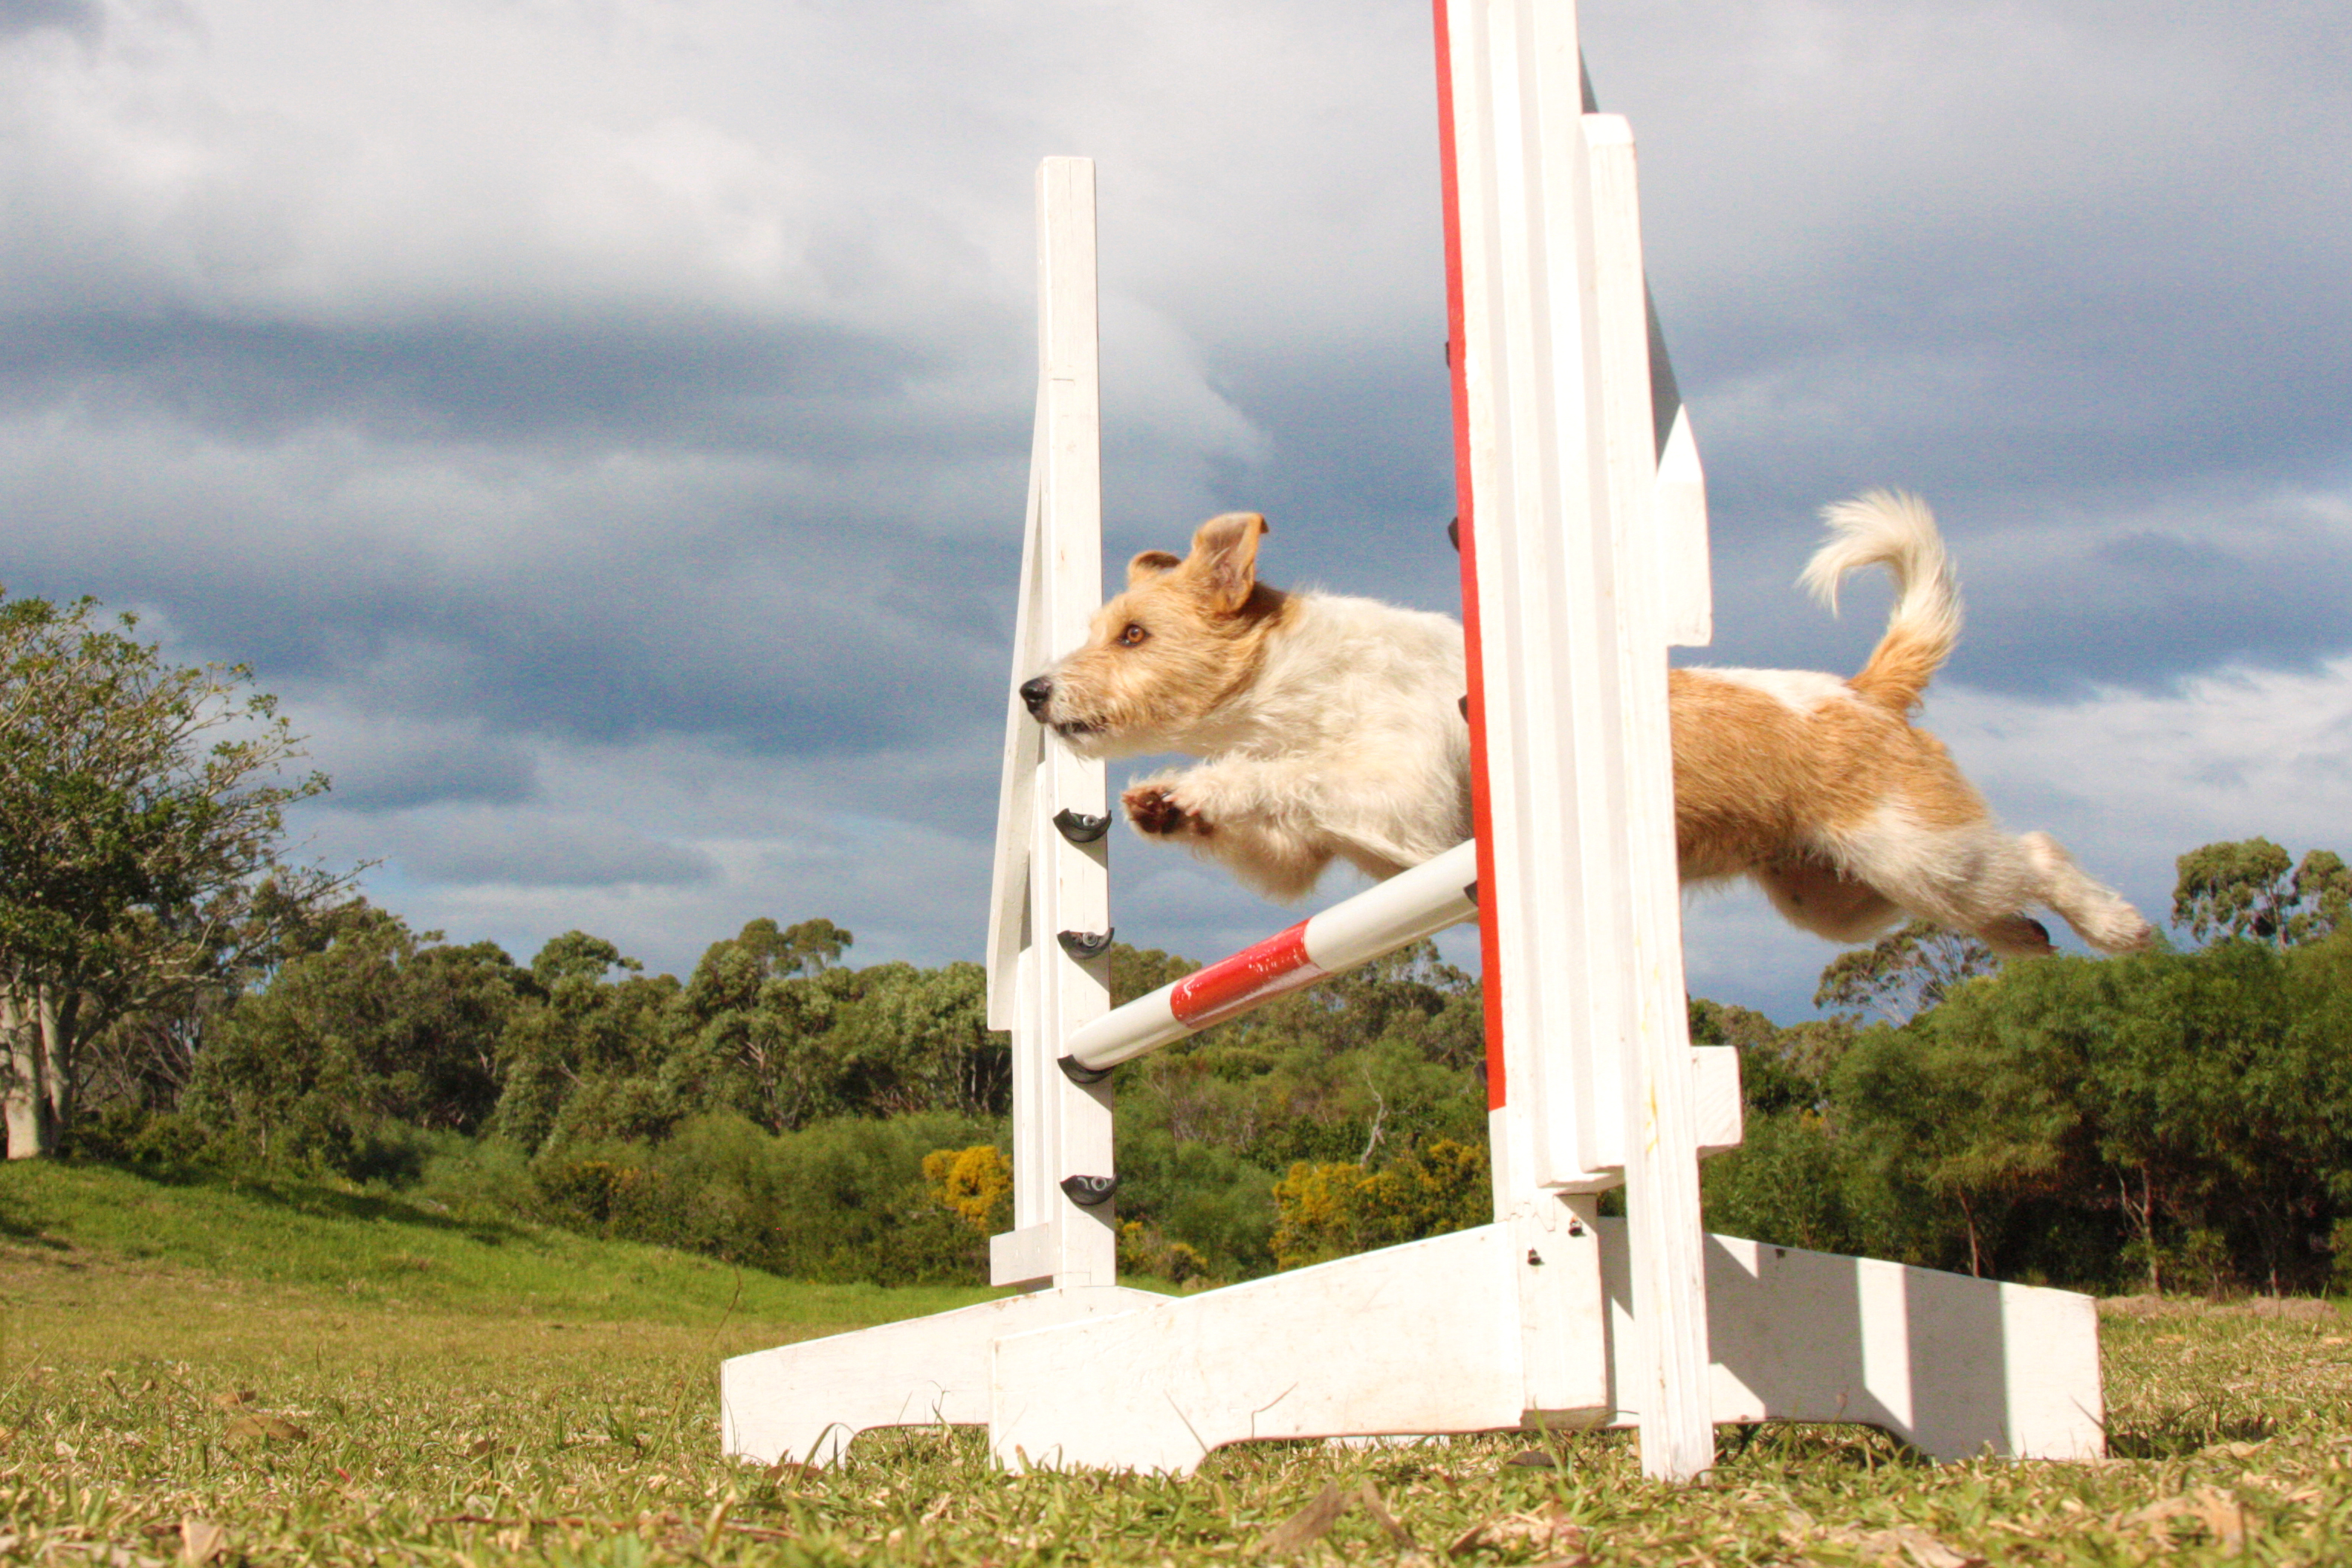 Brandi showing off her agility skills. Animaltalk Top Dog Awards - meet the agility winners! Animaltalk Top Dog Awards - meet the agility winners! Brandi